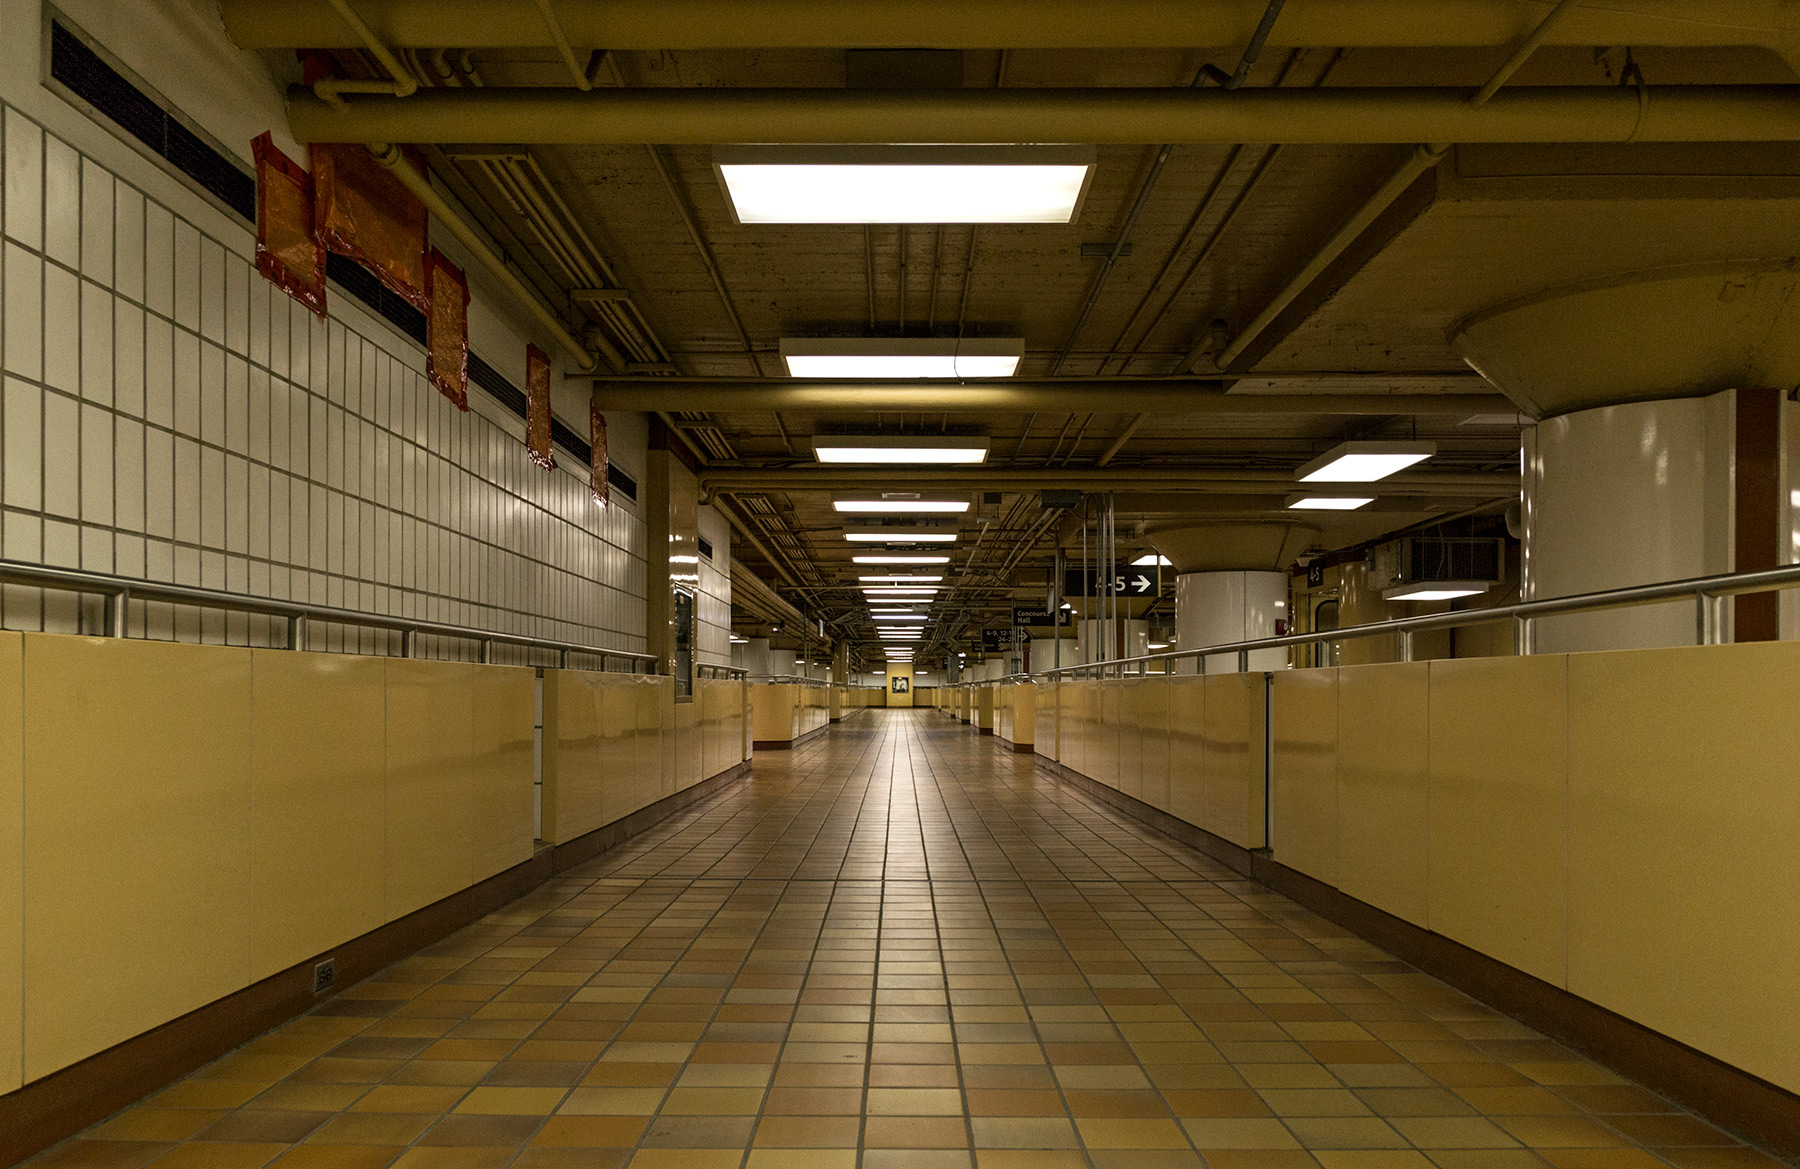 20150812. A conduit for commuters and an empty gangway of lights